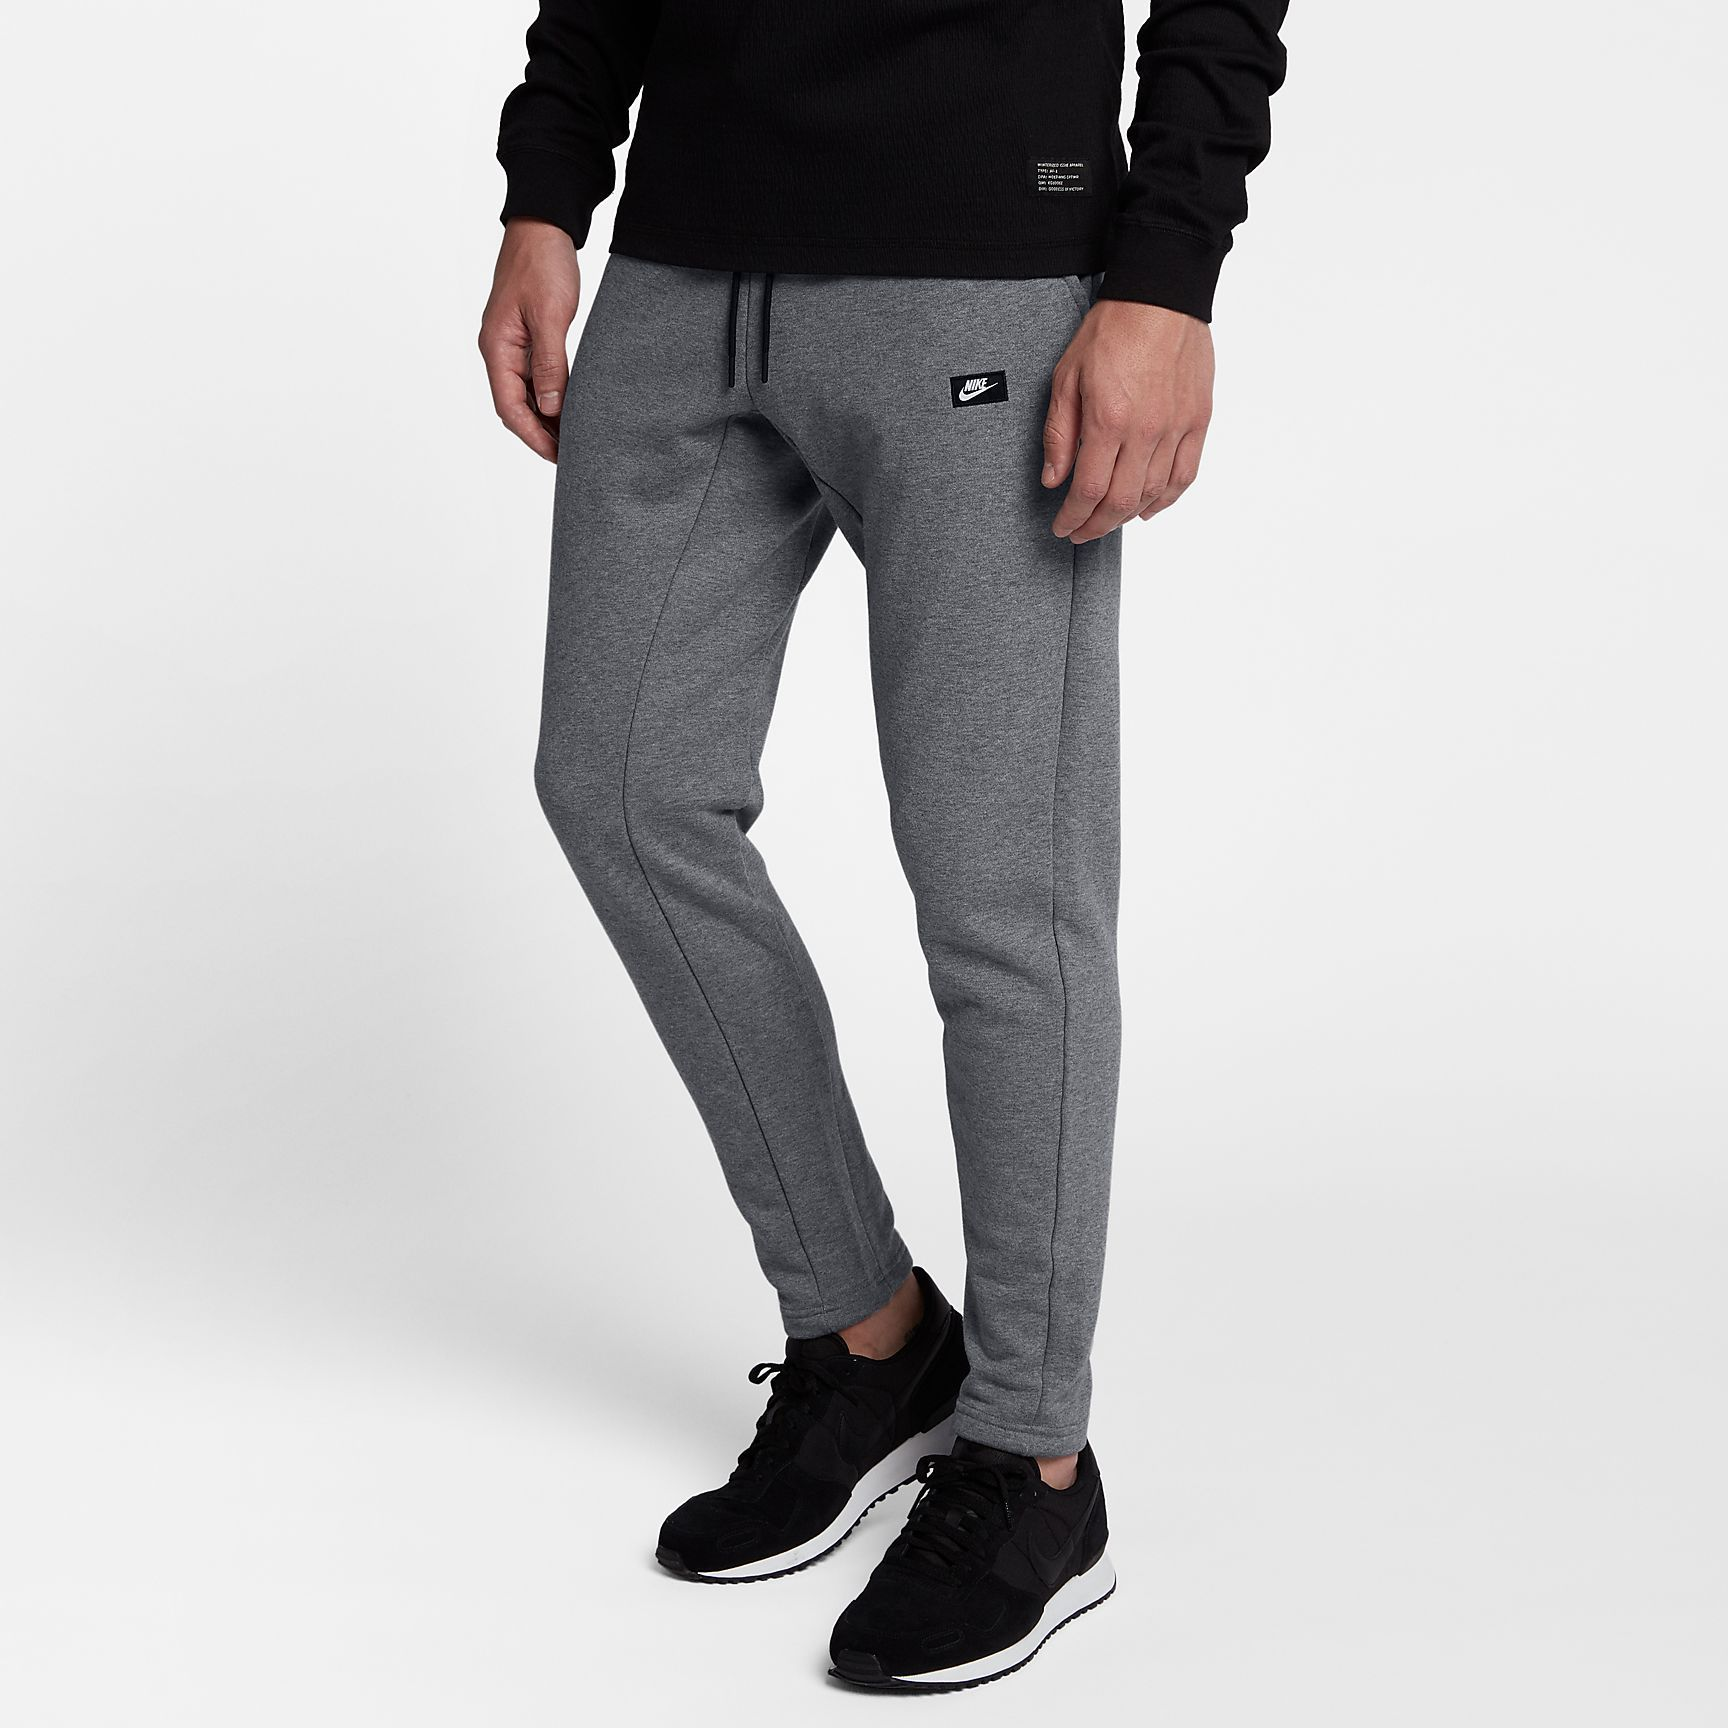 Unisex Low Price MODERN PANT - TROUSERS - Casual trousers Nike Free Shipping Manchester AcdH3